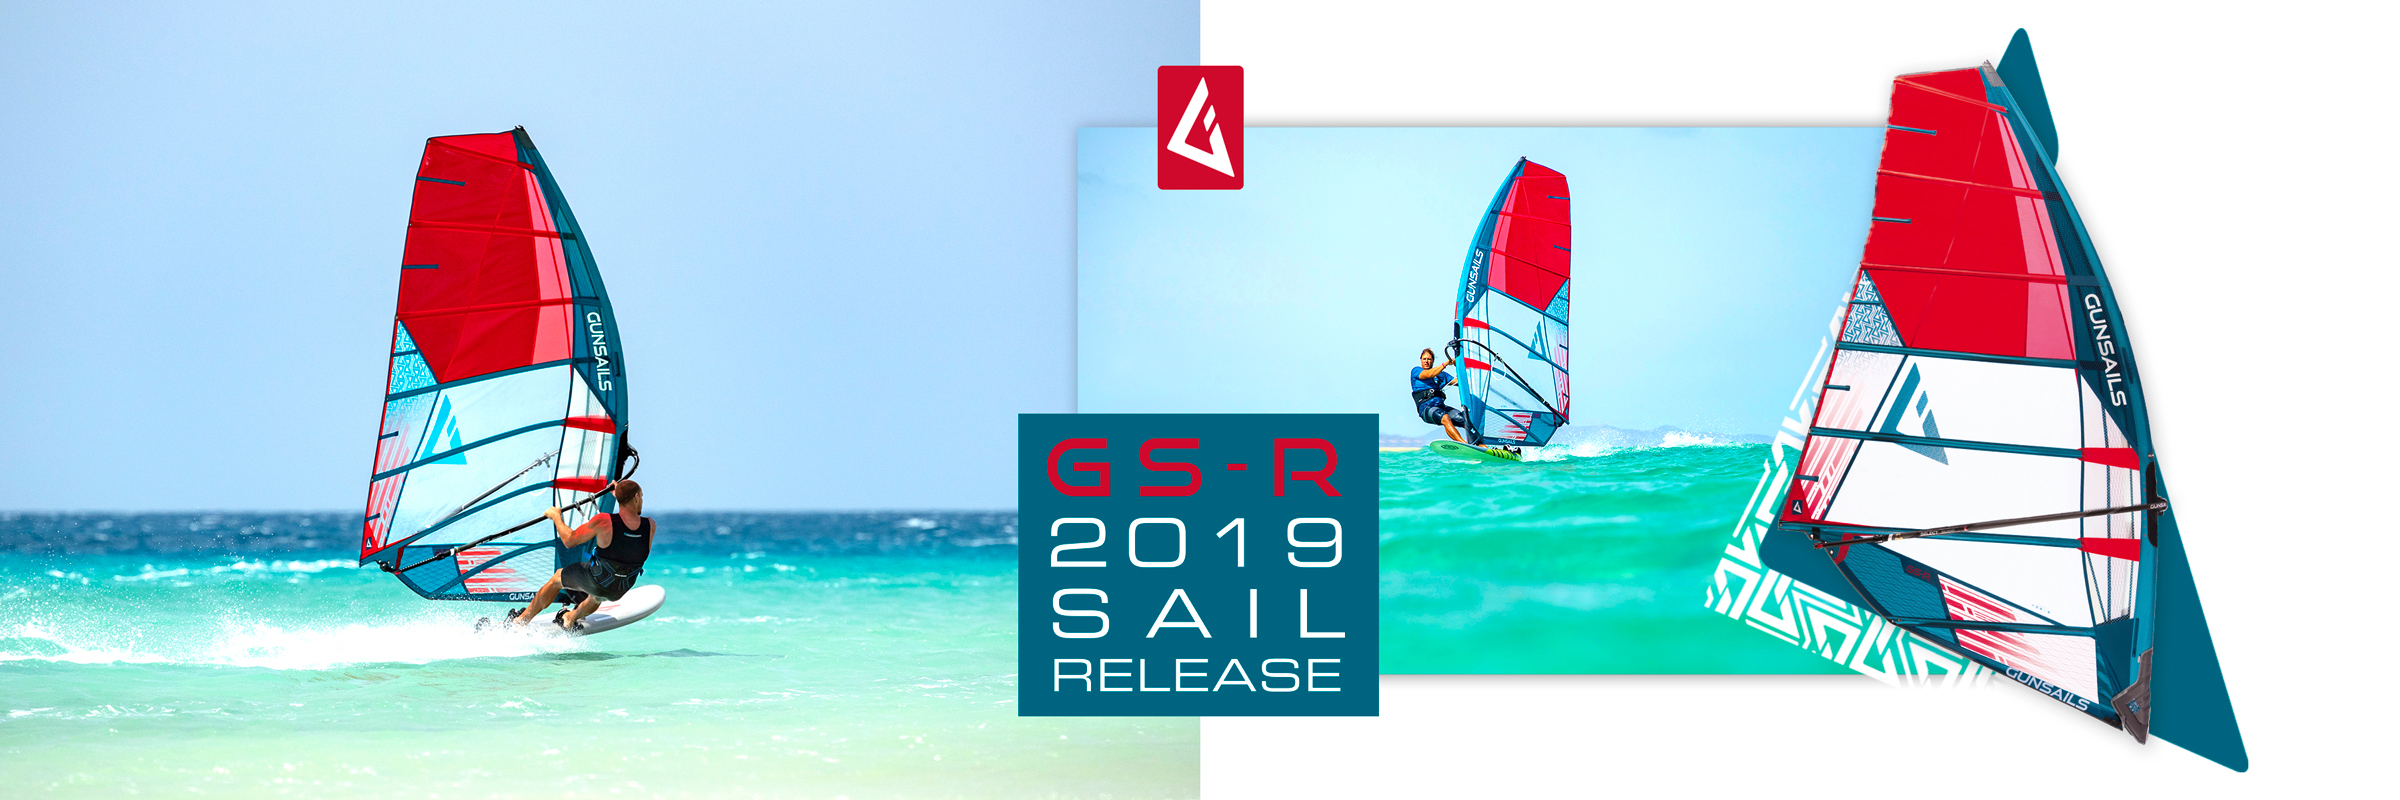 GUNSAILS | Sail Release 2019 - GS-R